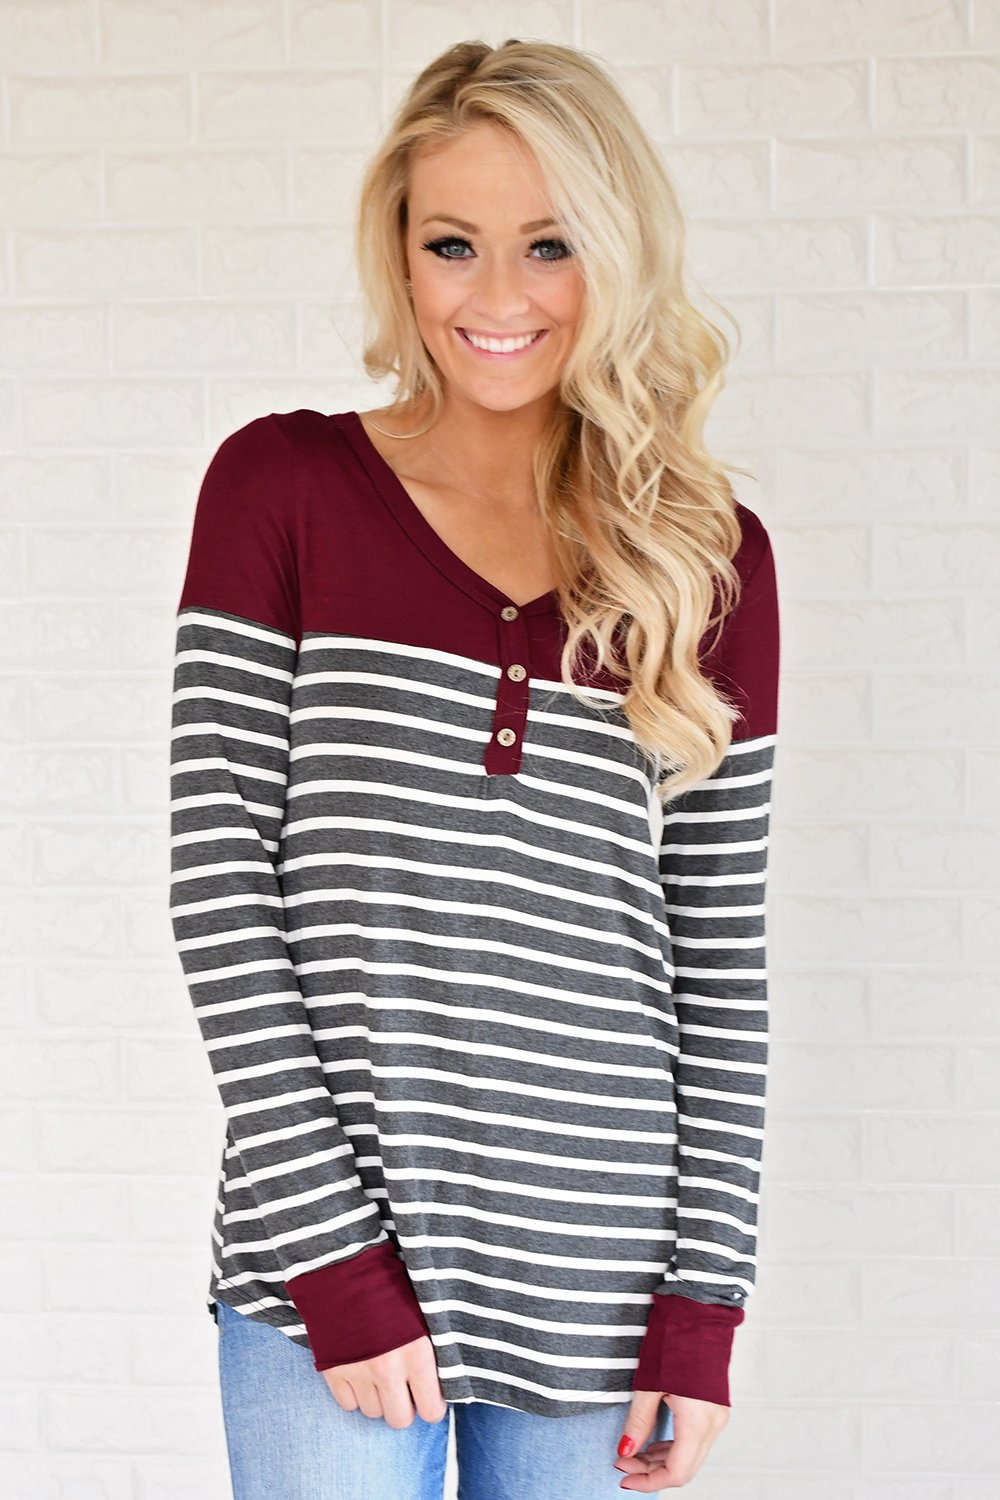 Go Your Own Way Striped Top ~ Burgundy & Grey